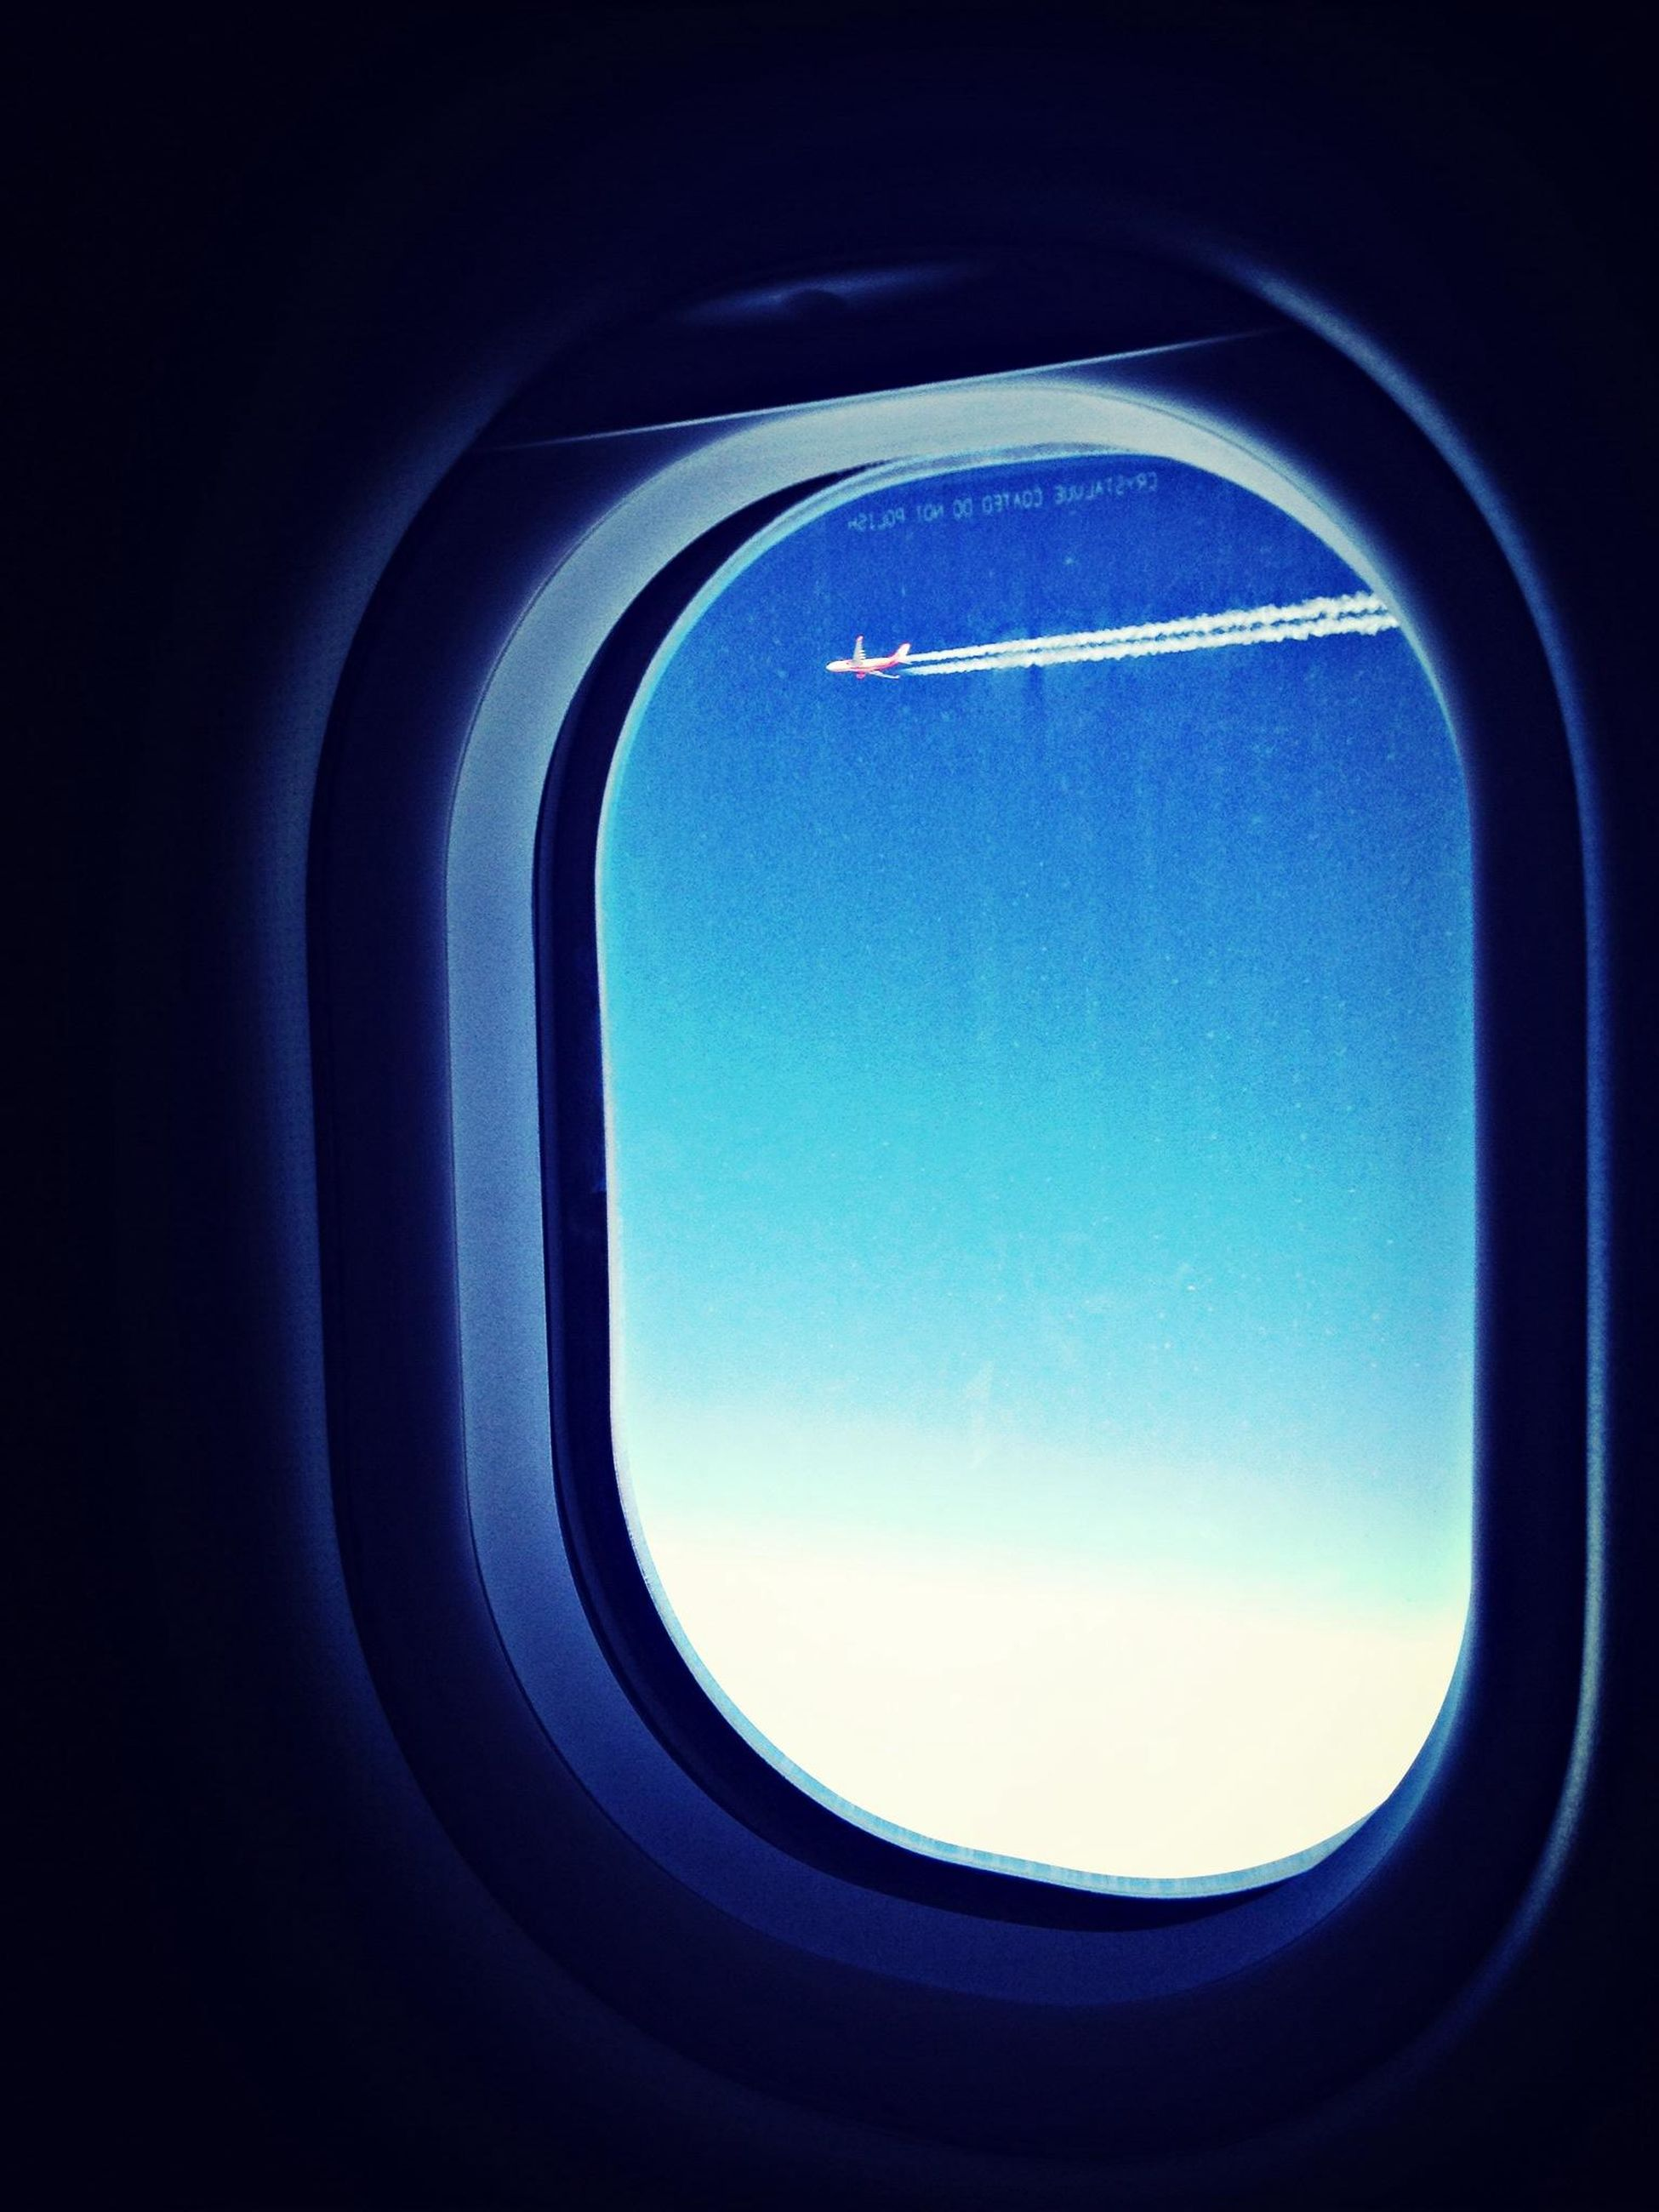 window, airplane, blue, indoors, transportation, vehicle interior, air vehicle, flying, transparent, glass - material, sky, low angle view, clear sky, mode of transport, part of, silhouette, mid-air, copy space, looking through window, journey